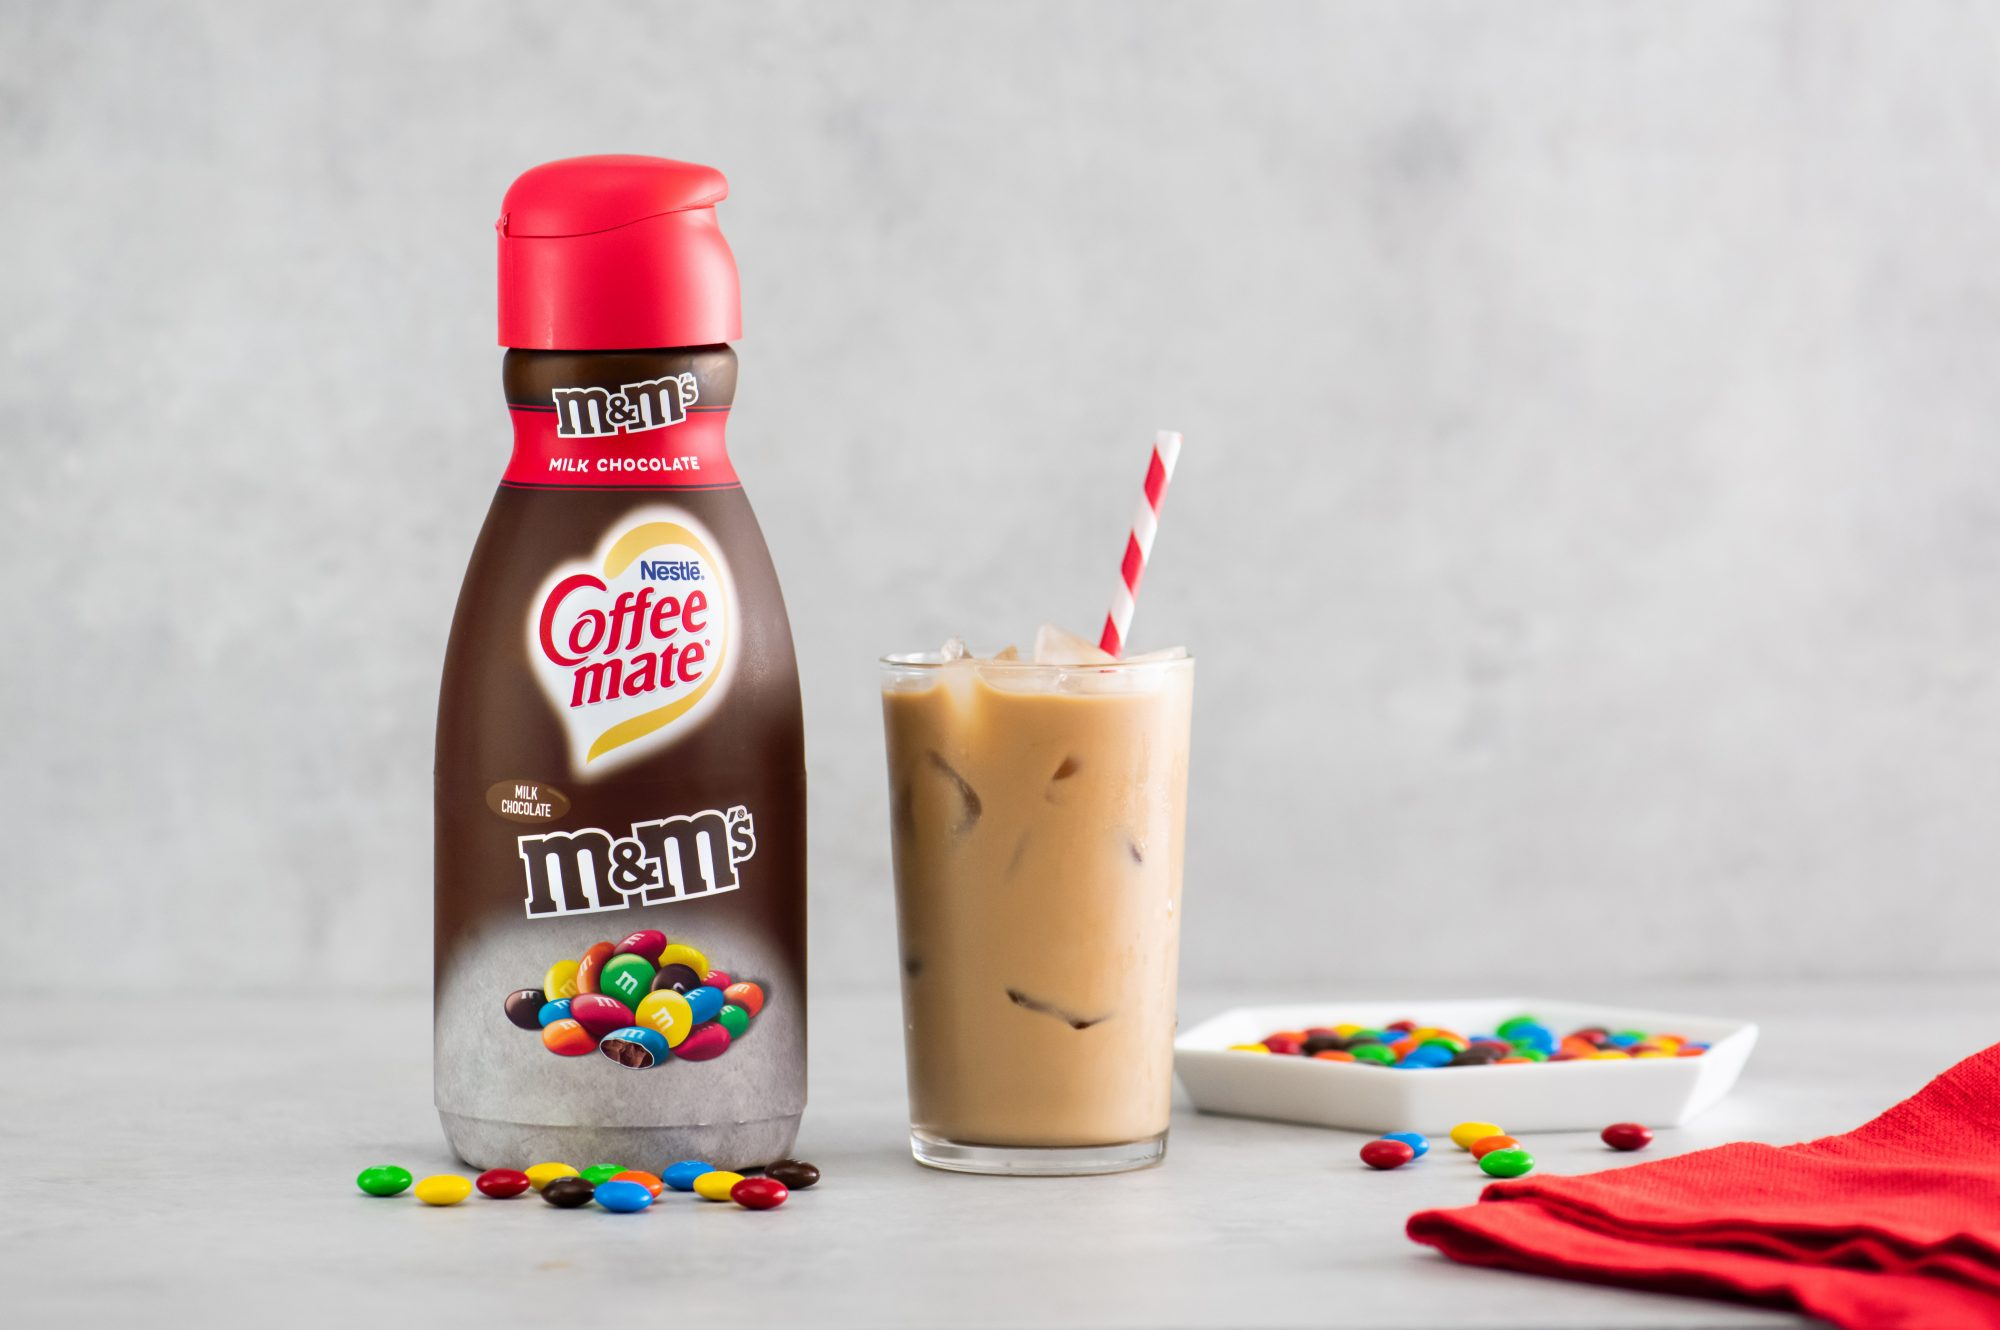 A bottle of coffee creamer next a glass of iced coffee